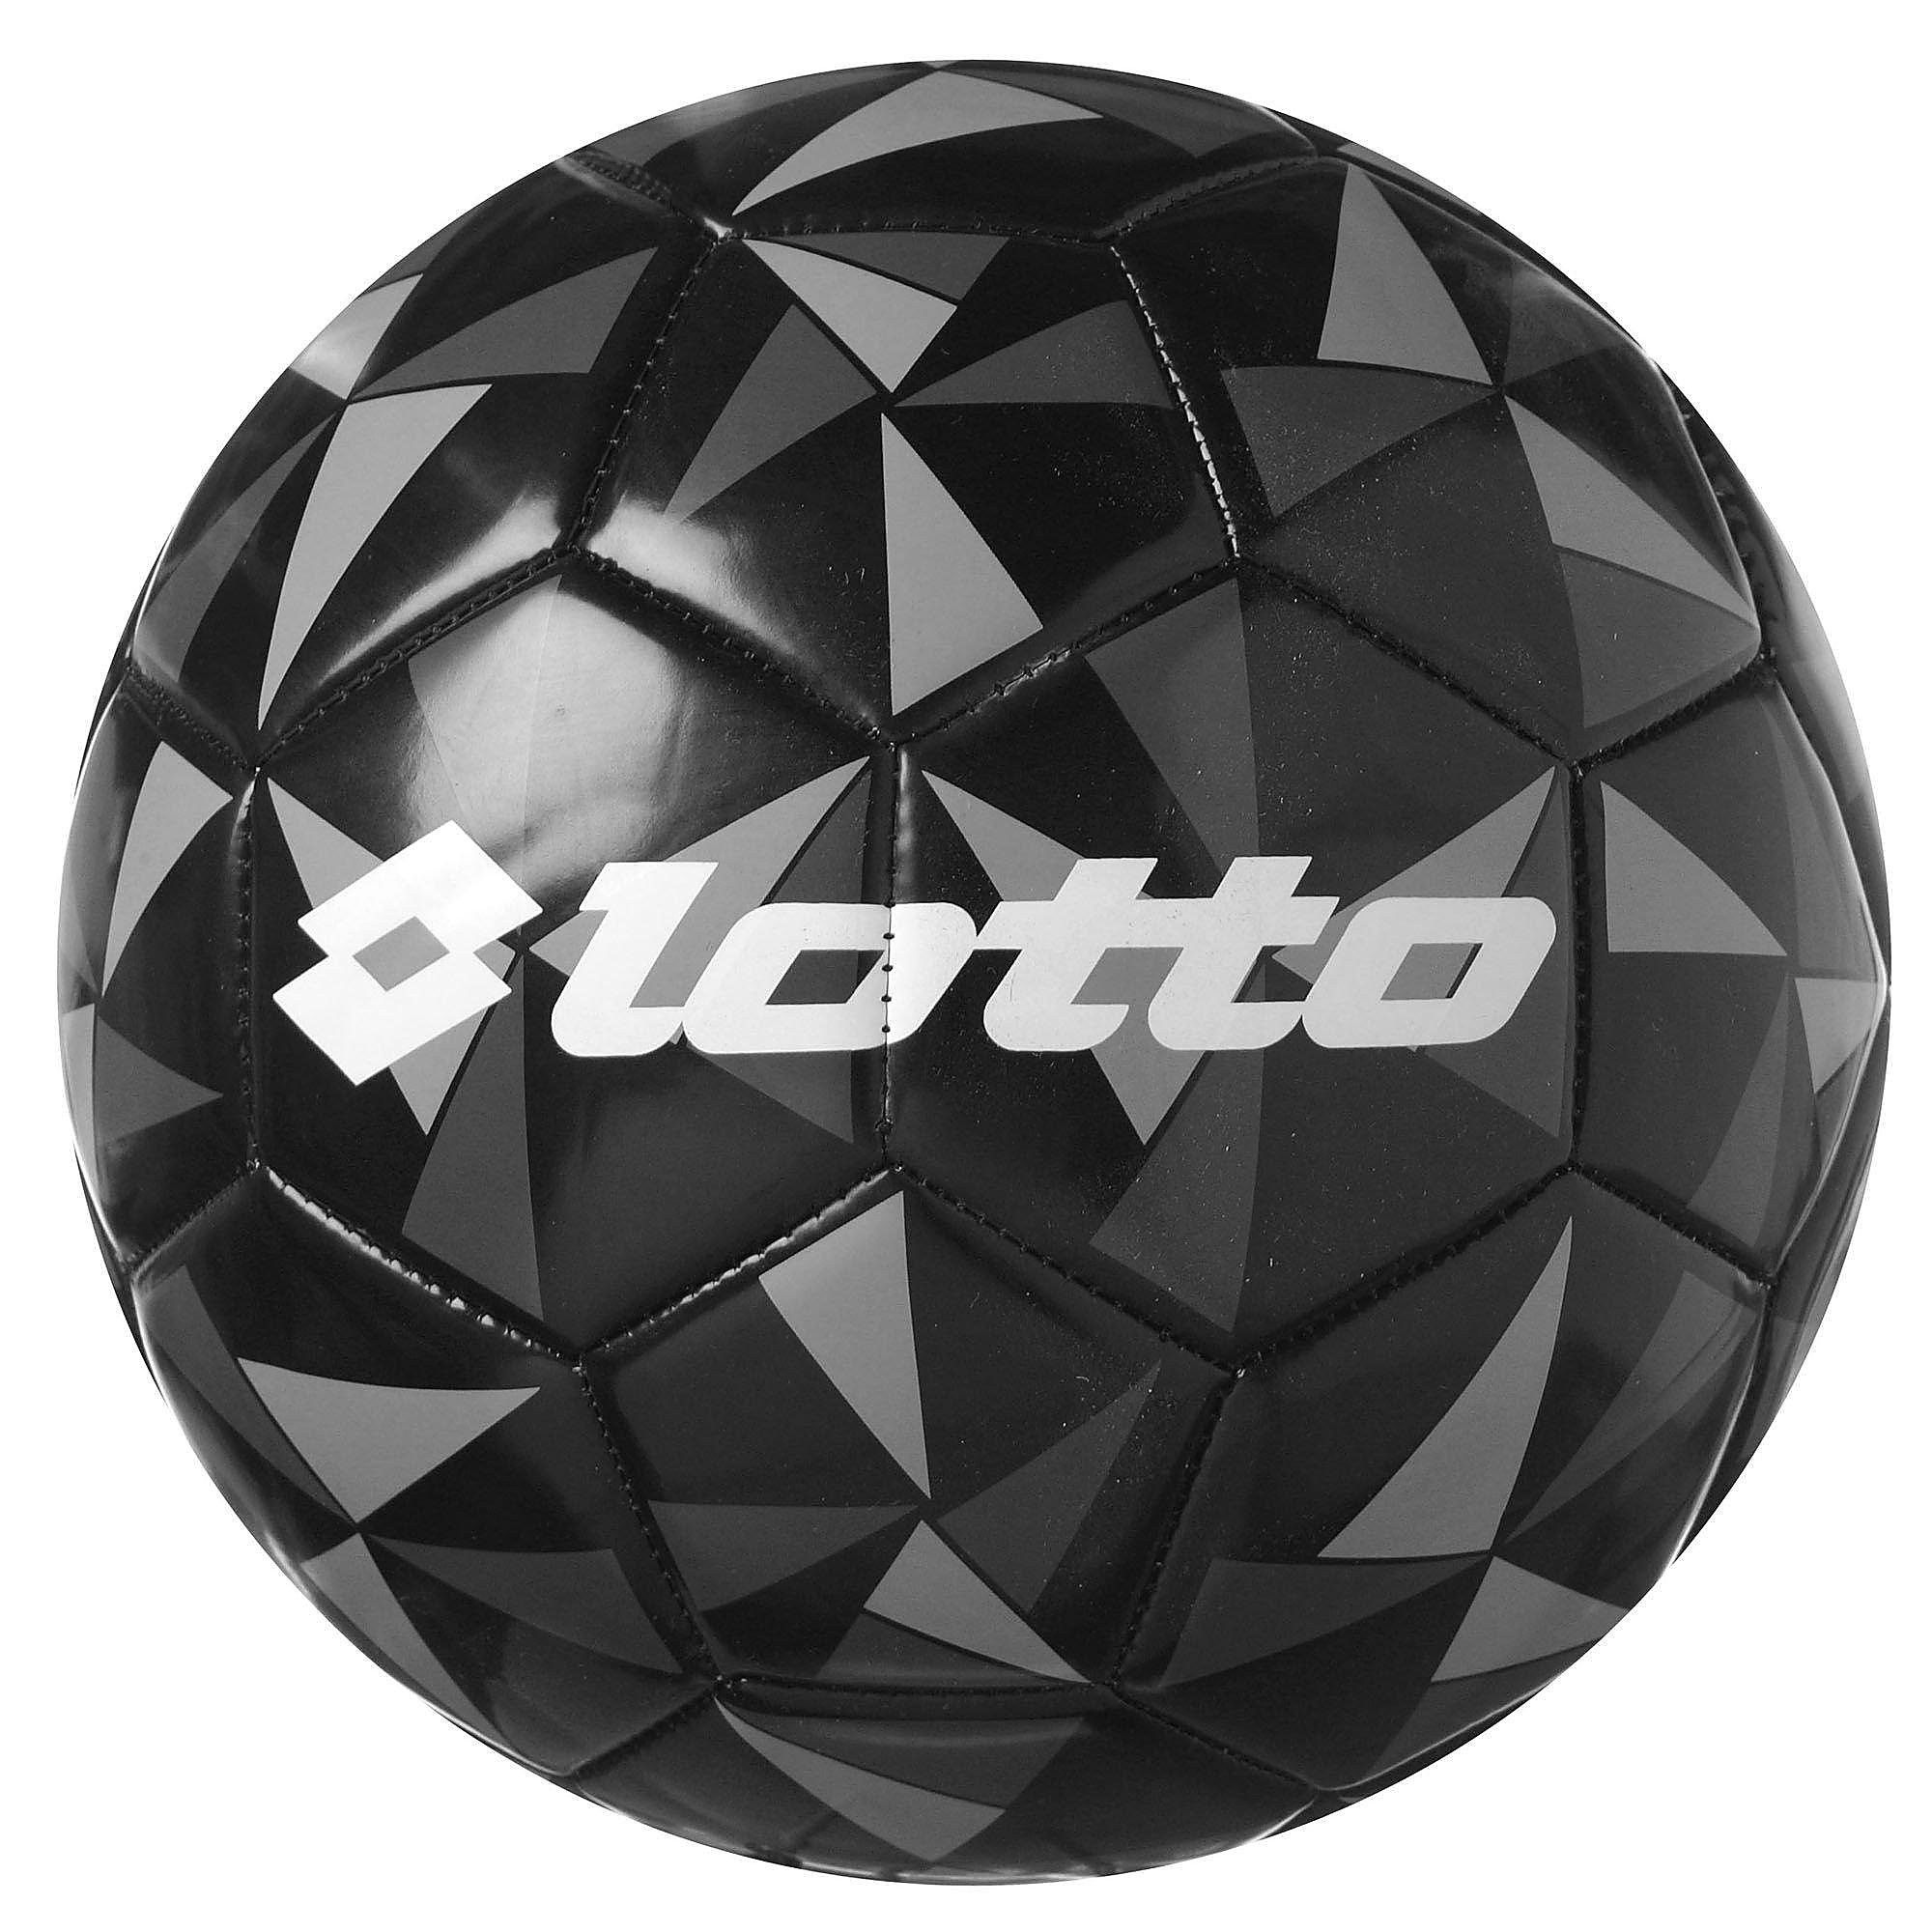 LOTTO INVADER SOCCER BALL